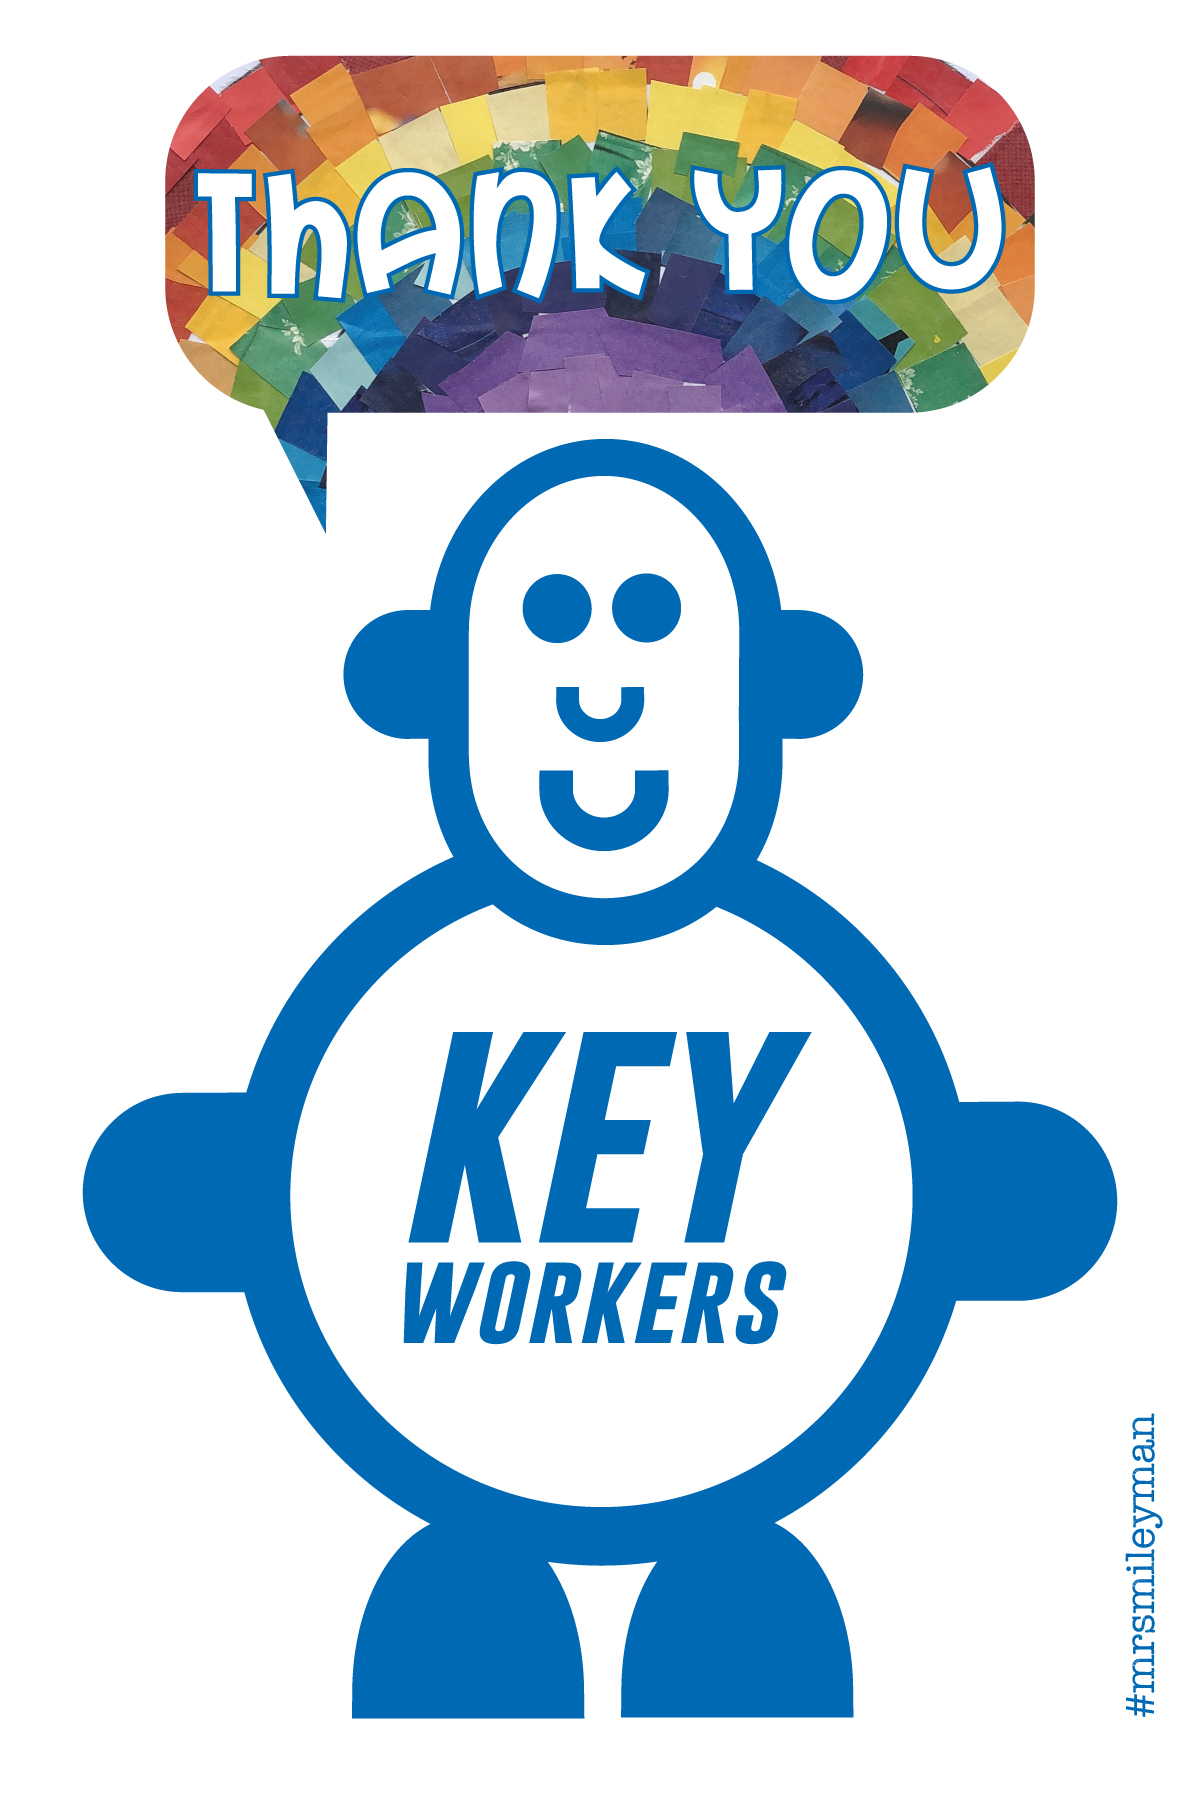 Smiling cute blue character in blue with rainbow speech bubble saying Thank You to Key Workers